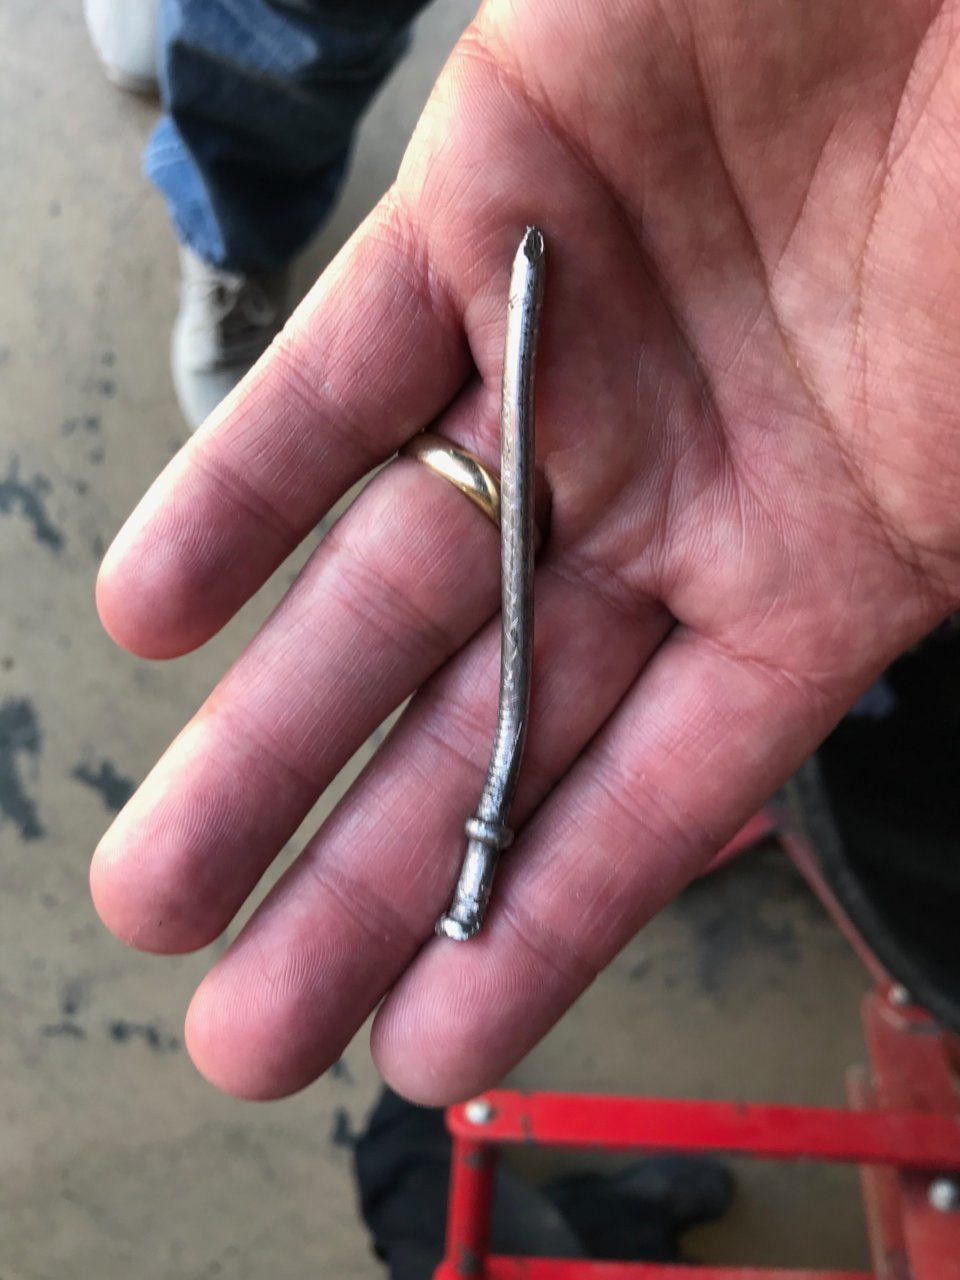 nail in the tire and destroyed sensor | Toyota Tundra Forum